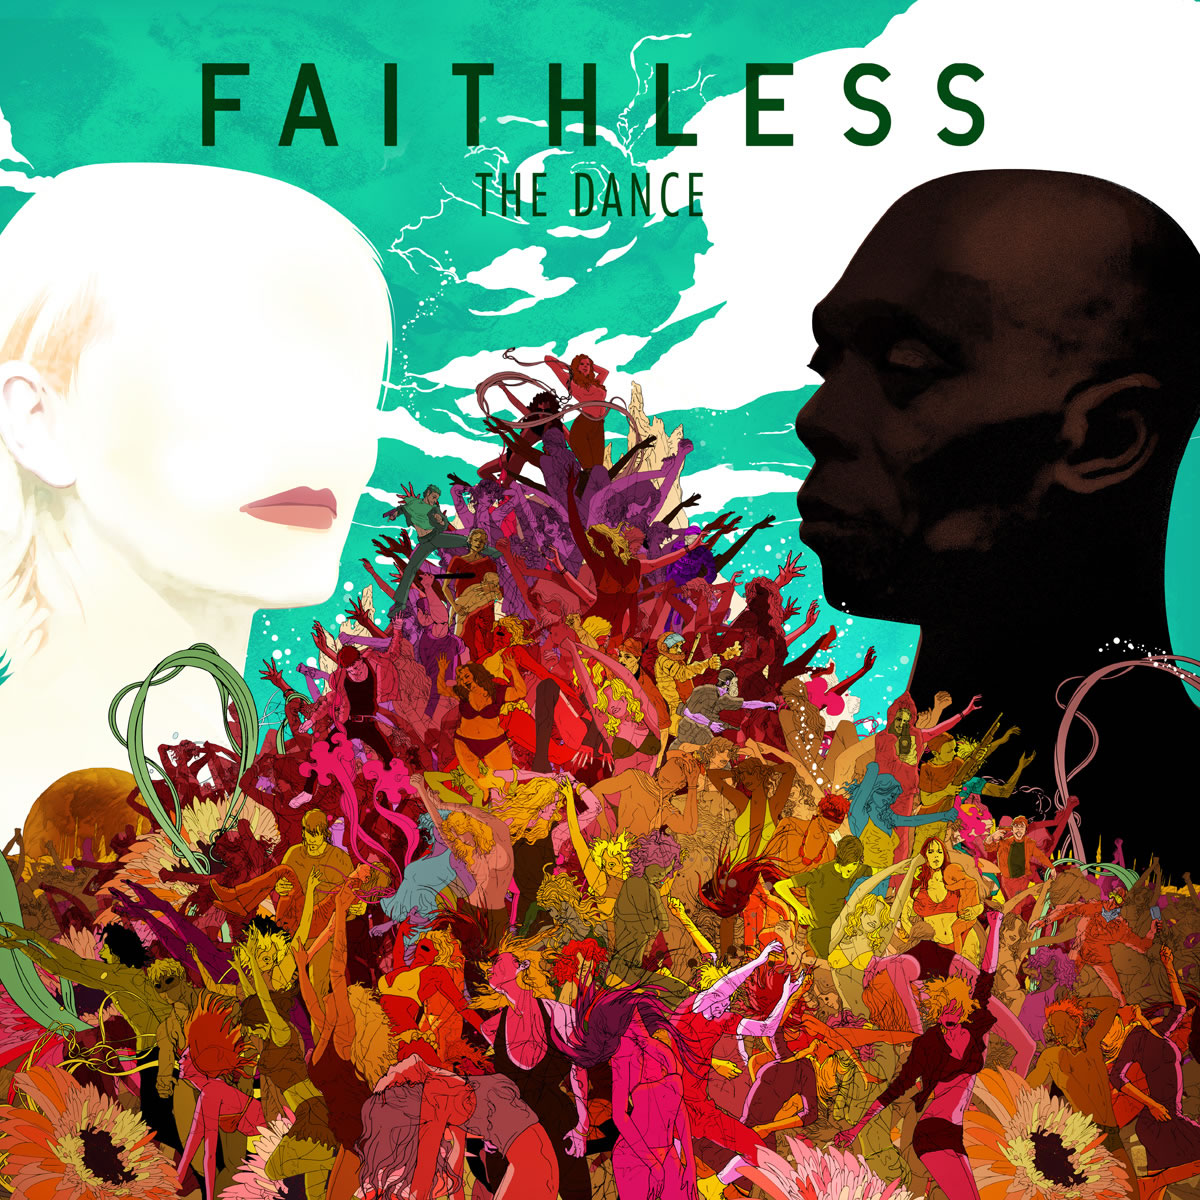 Faithless - Insomnia (Sasha B.A Remix)